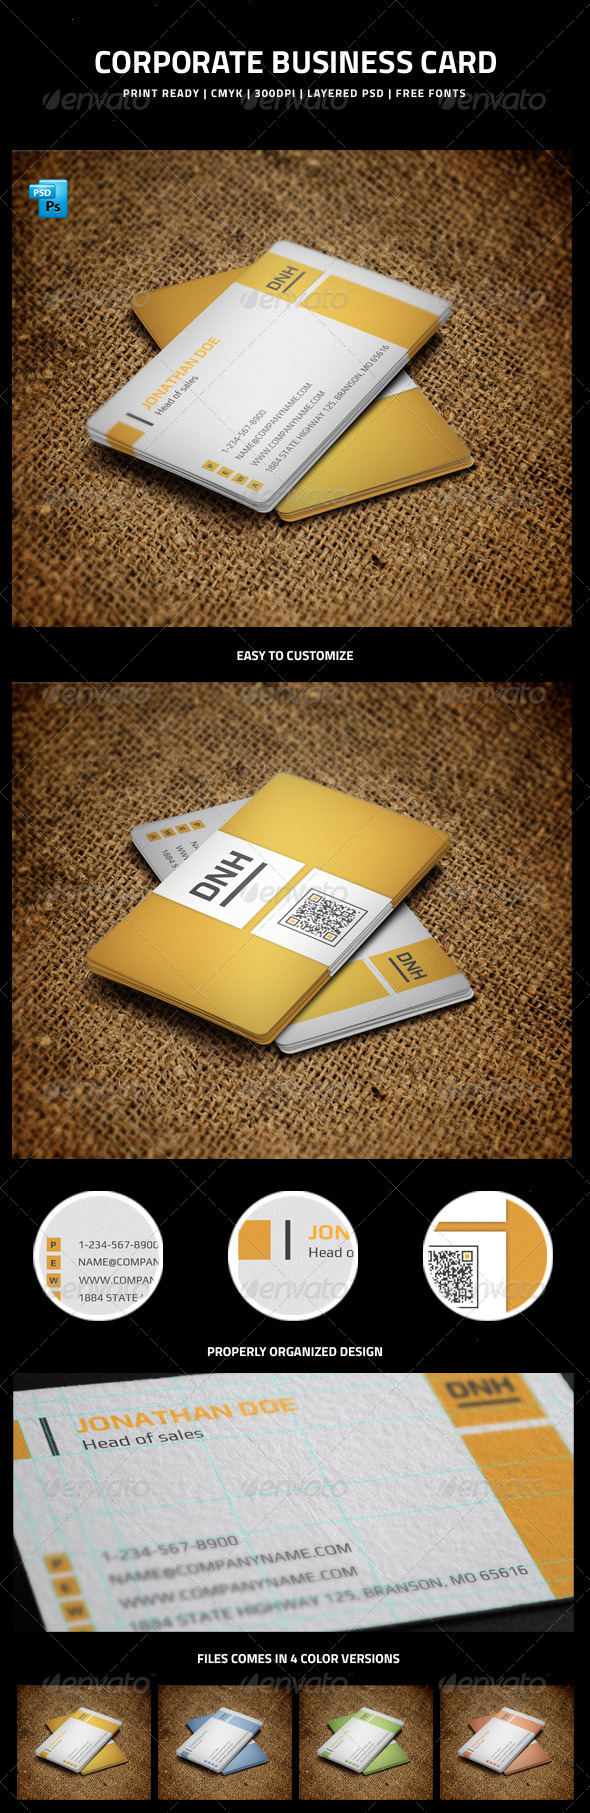 Corporate Business Card  with QR code - 7 - Corporate Business Cards